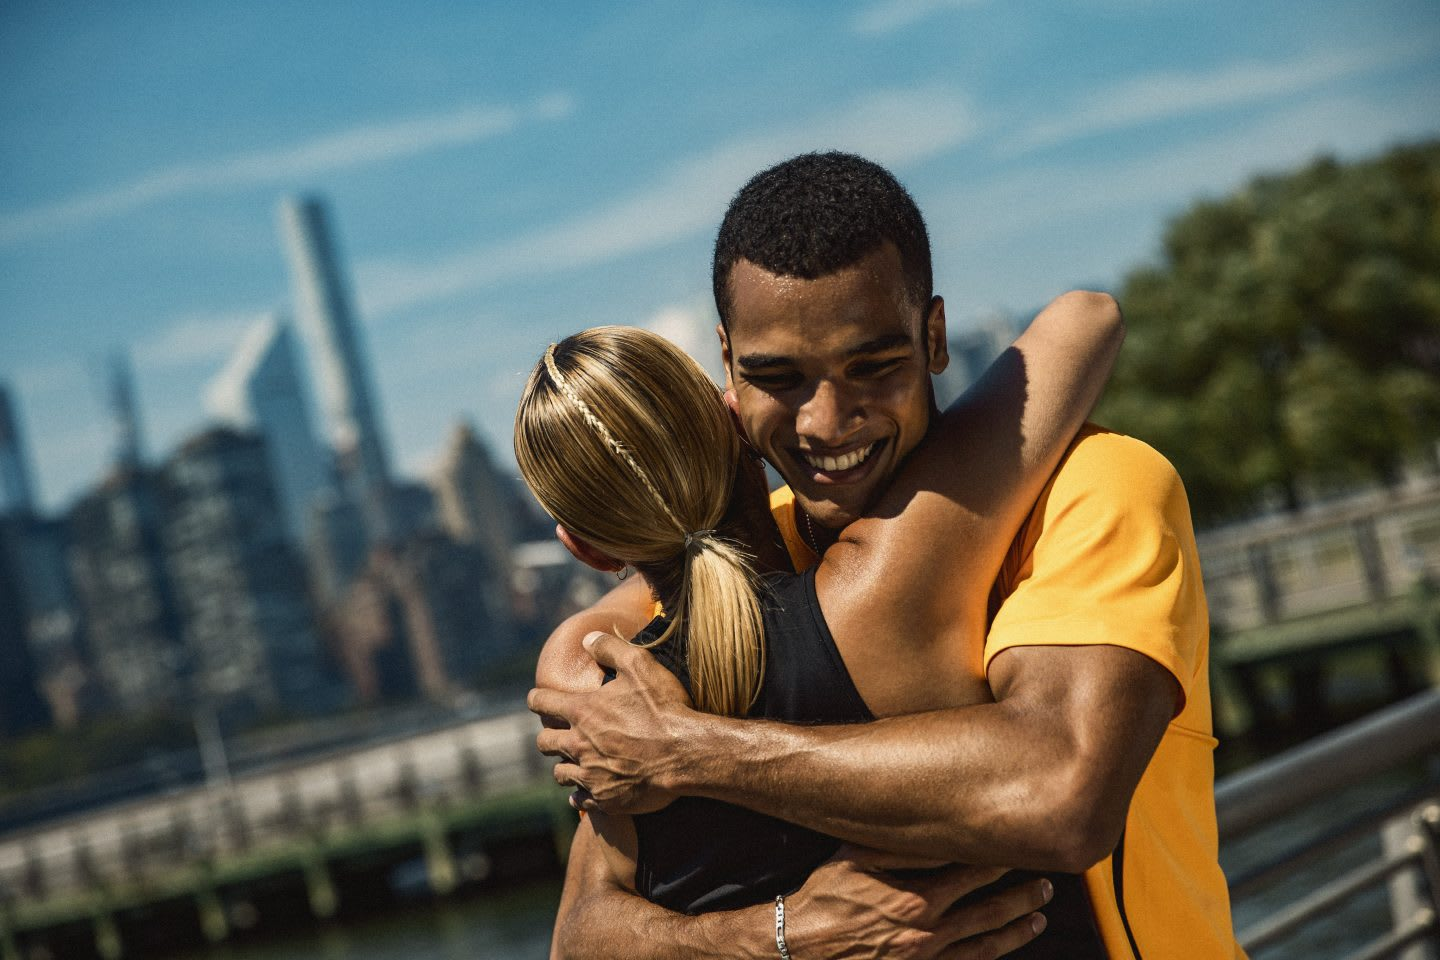 Man wearing yellow t-shirt smiling while hugging a blonde woman, teamwork. support, friendship, happiness, sports, sportsmanship, adidas